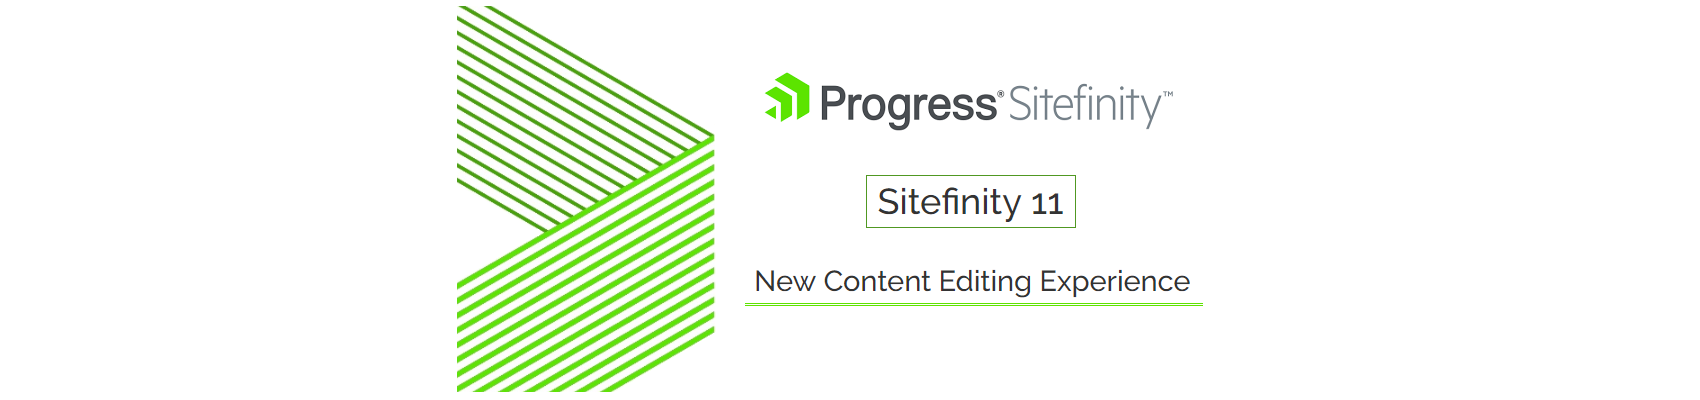 Sitefinity 11 New Content Editing Experience